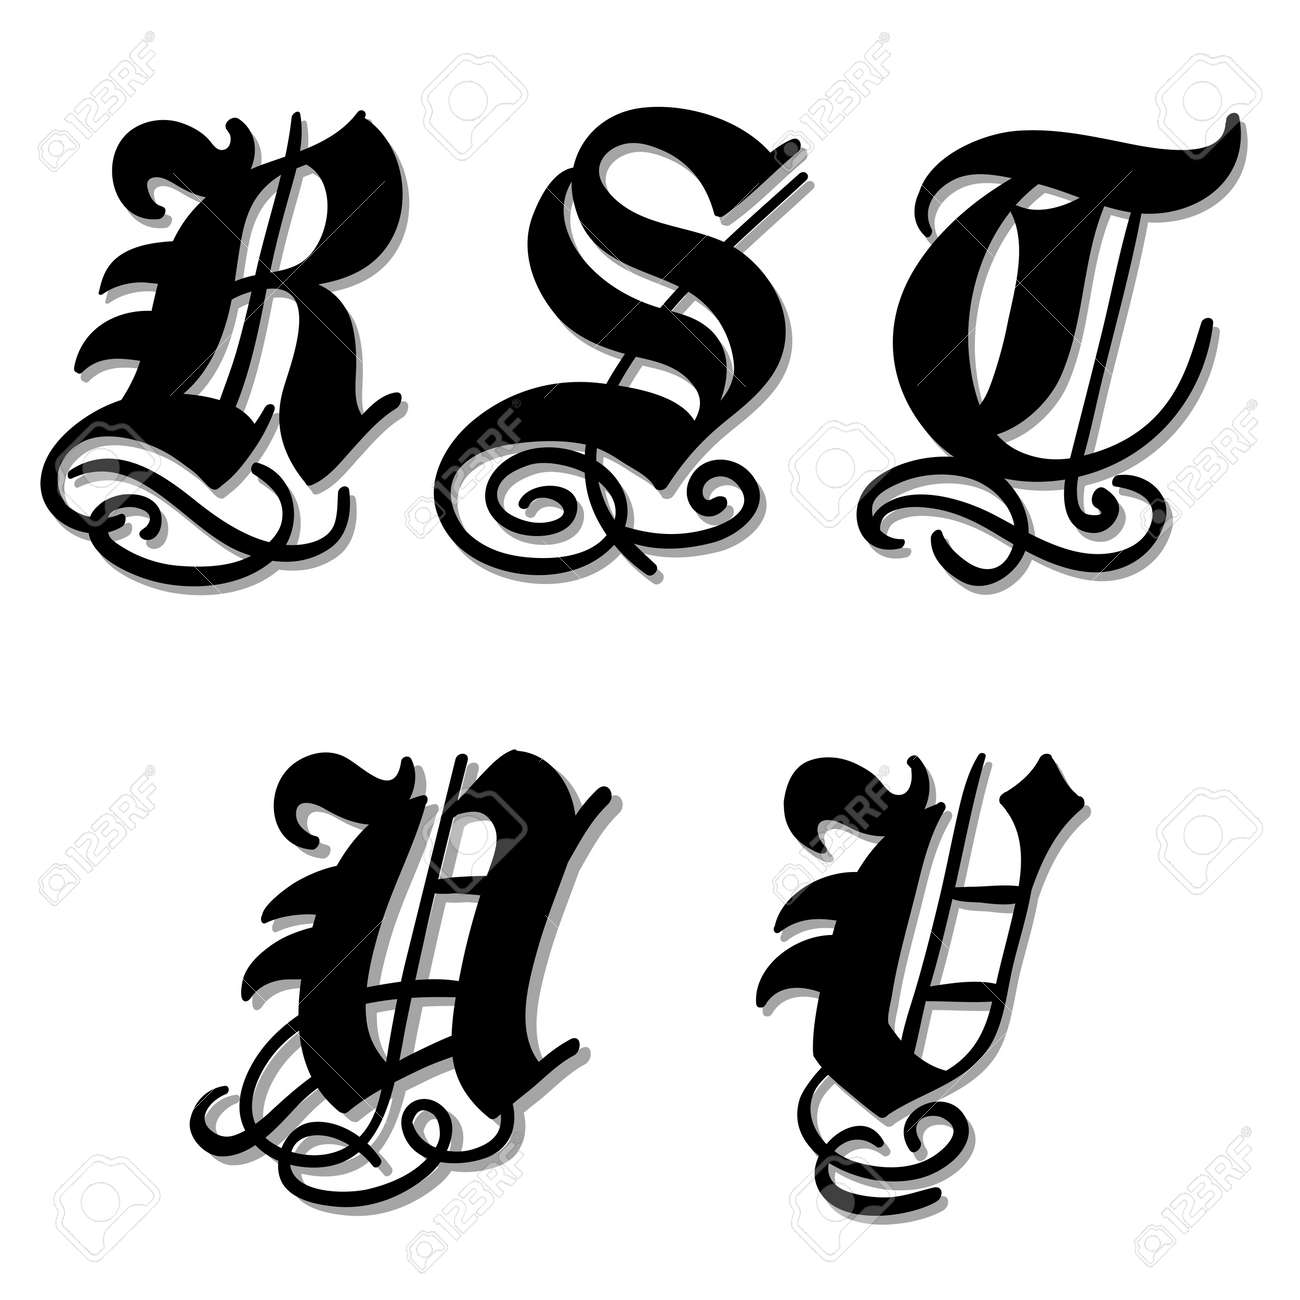 Uppercase Gothic Alphabet Letters R S T U V In A Bold Black